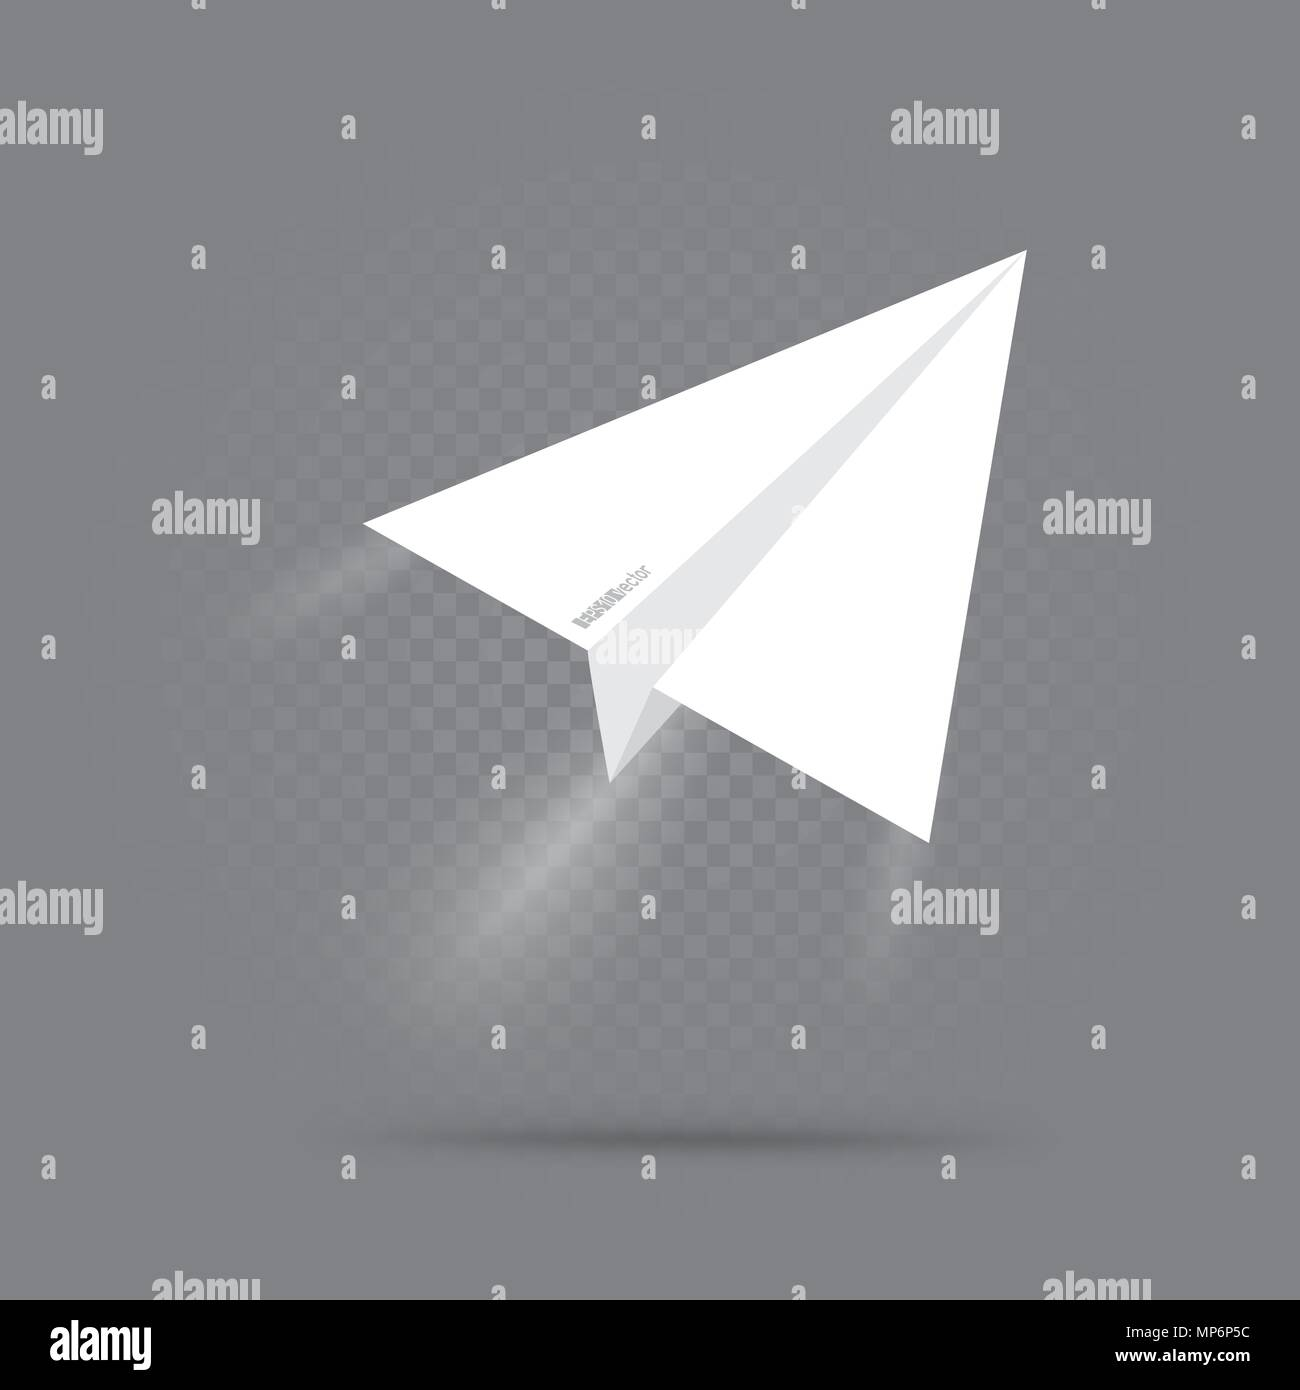 Origami Bandit Airplane - use 7x9 in square paper of 15-weight ... | 1390x1300